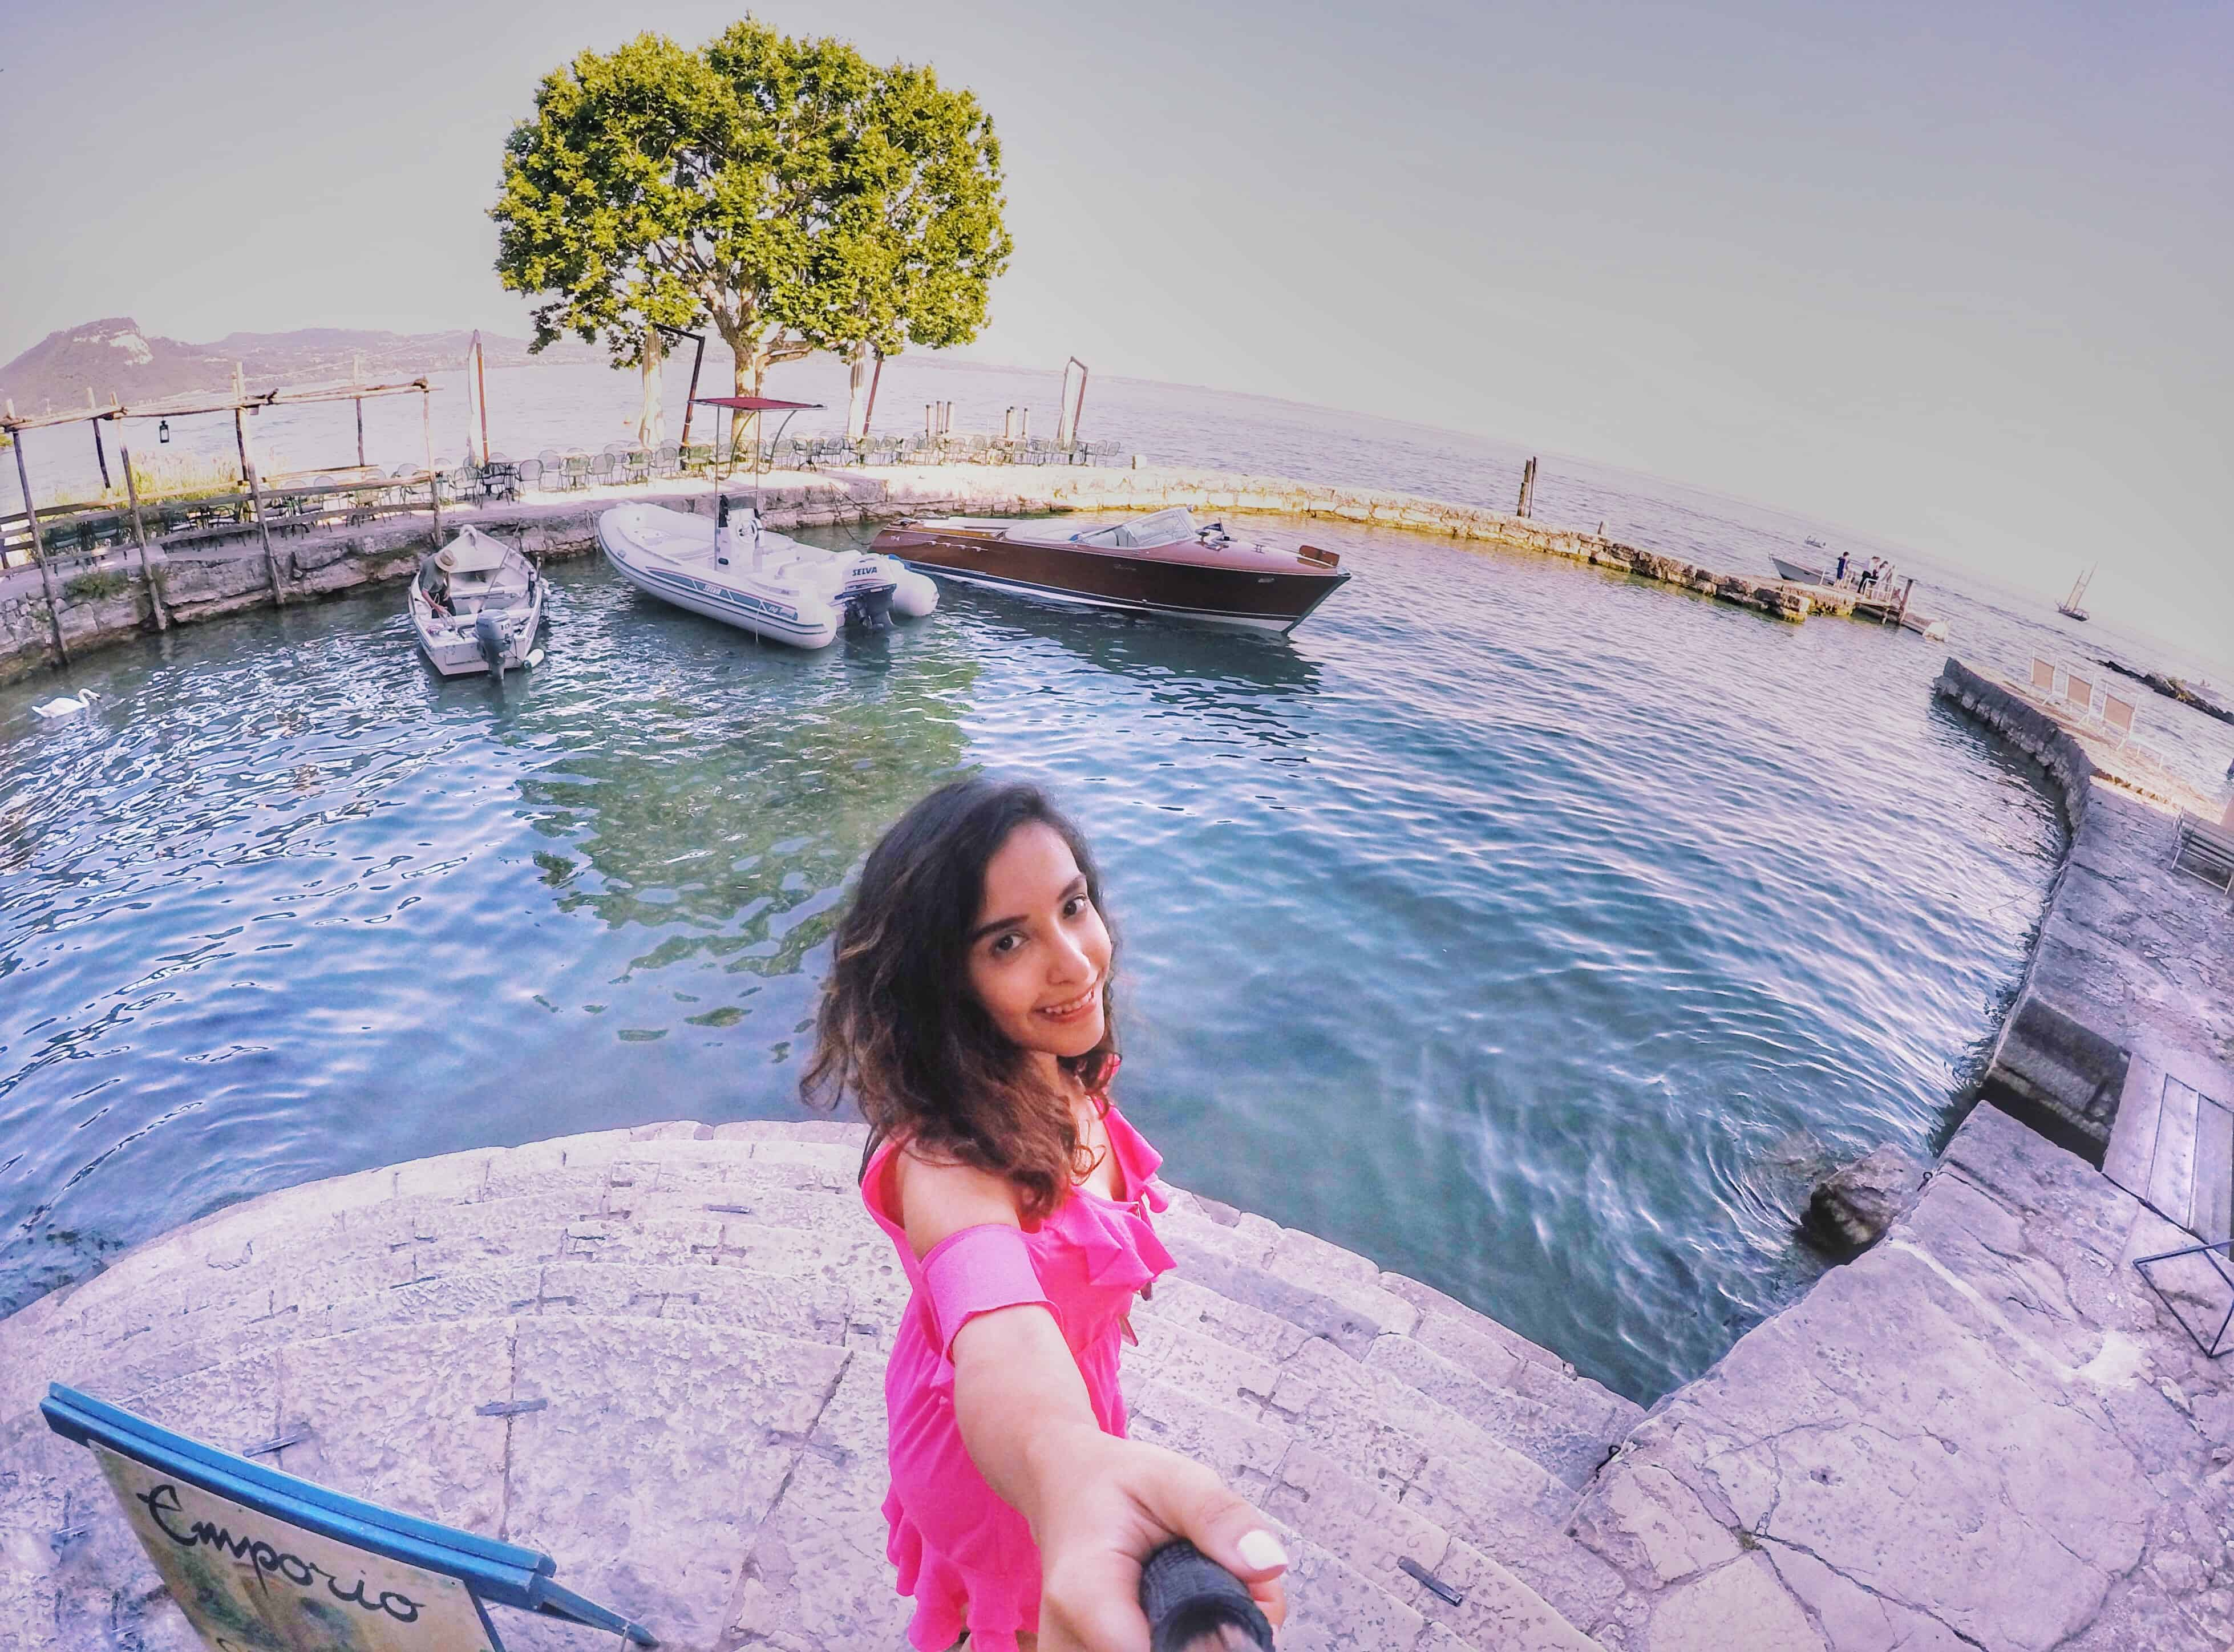 6 amazing places that are suitable for women traveling alone